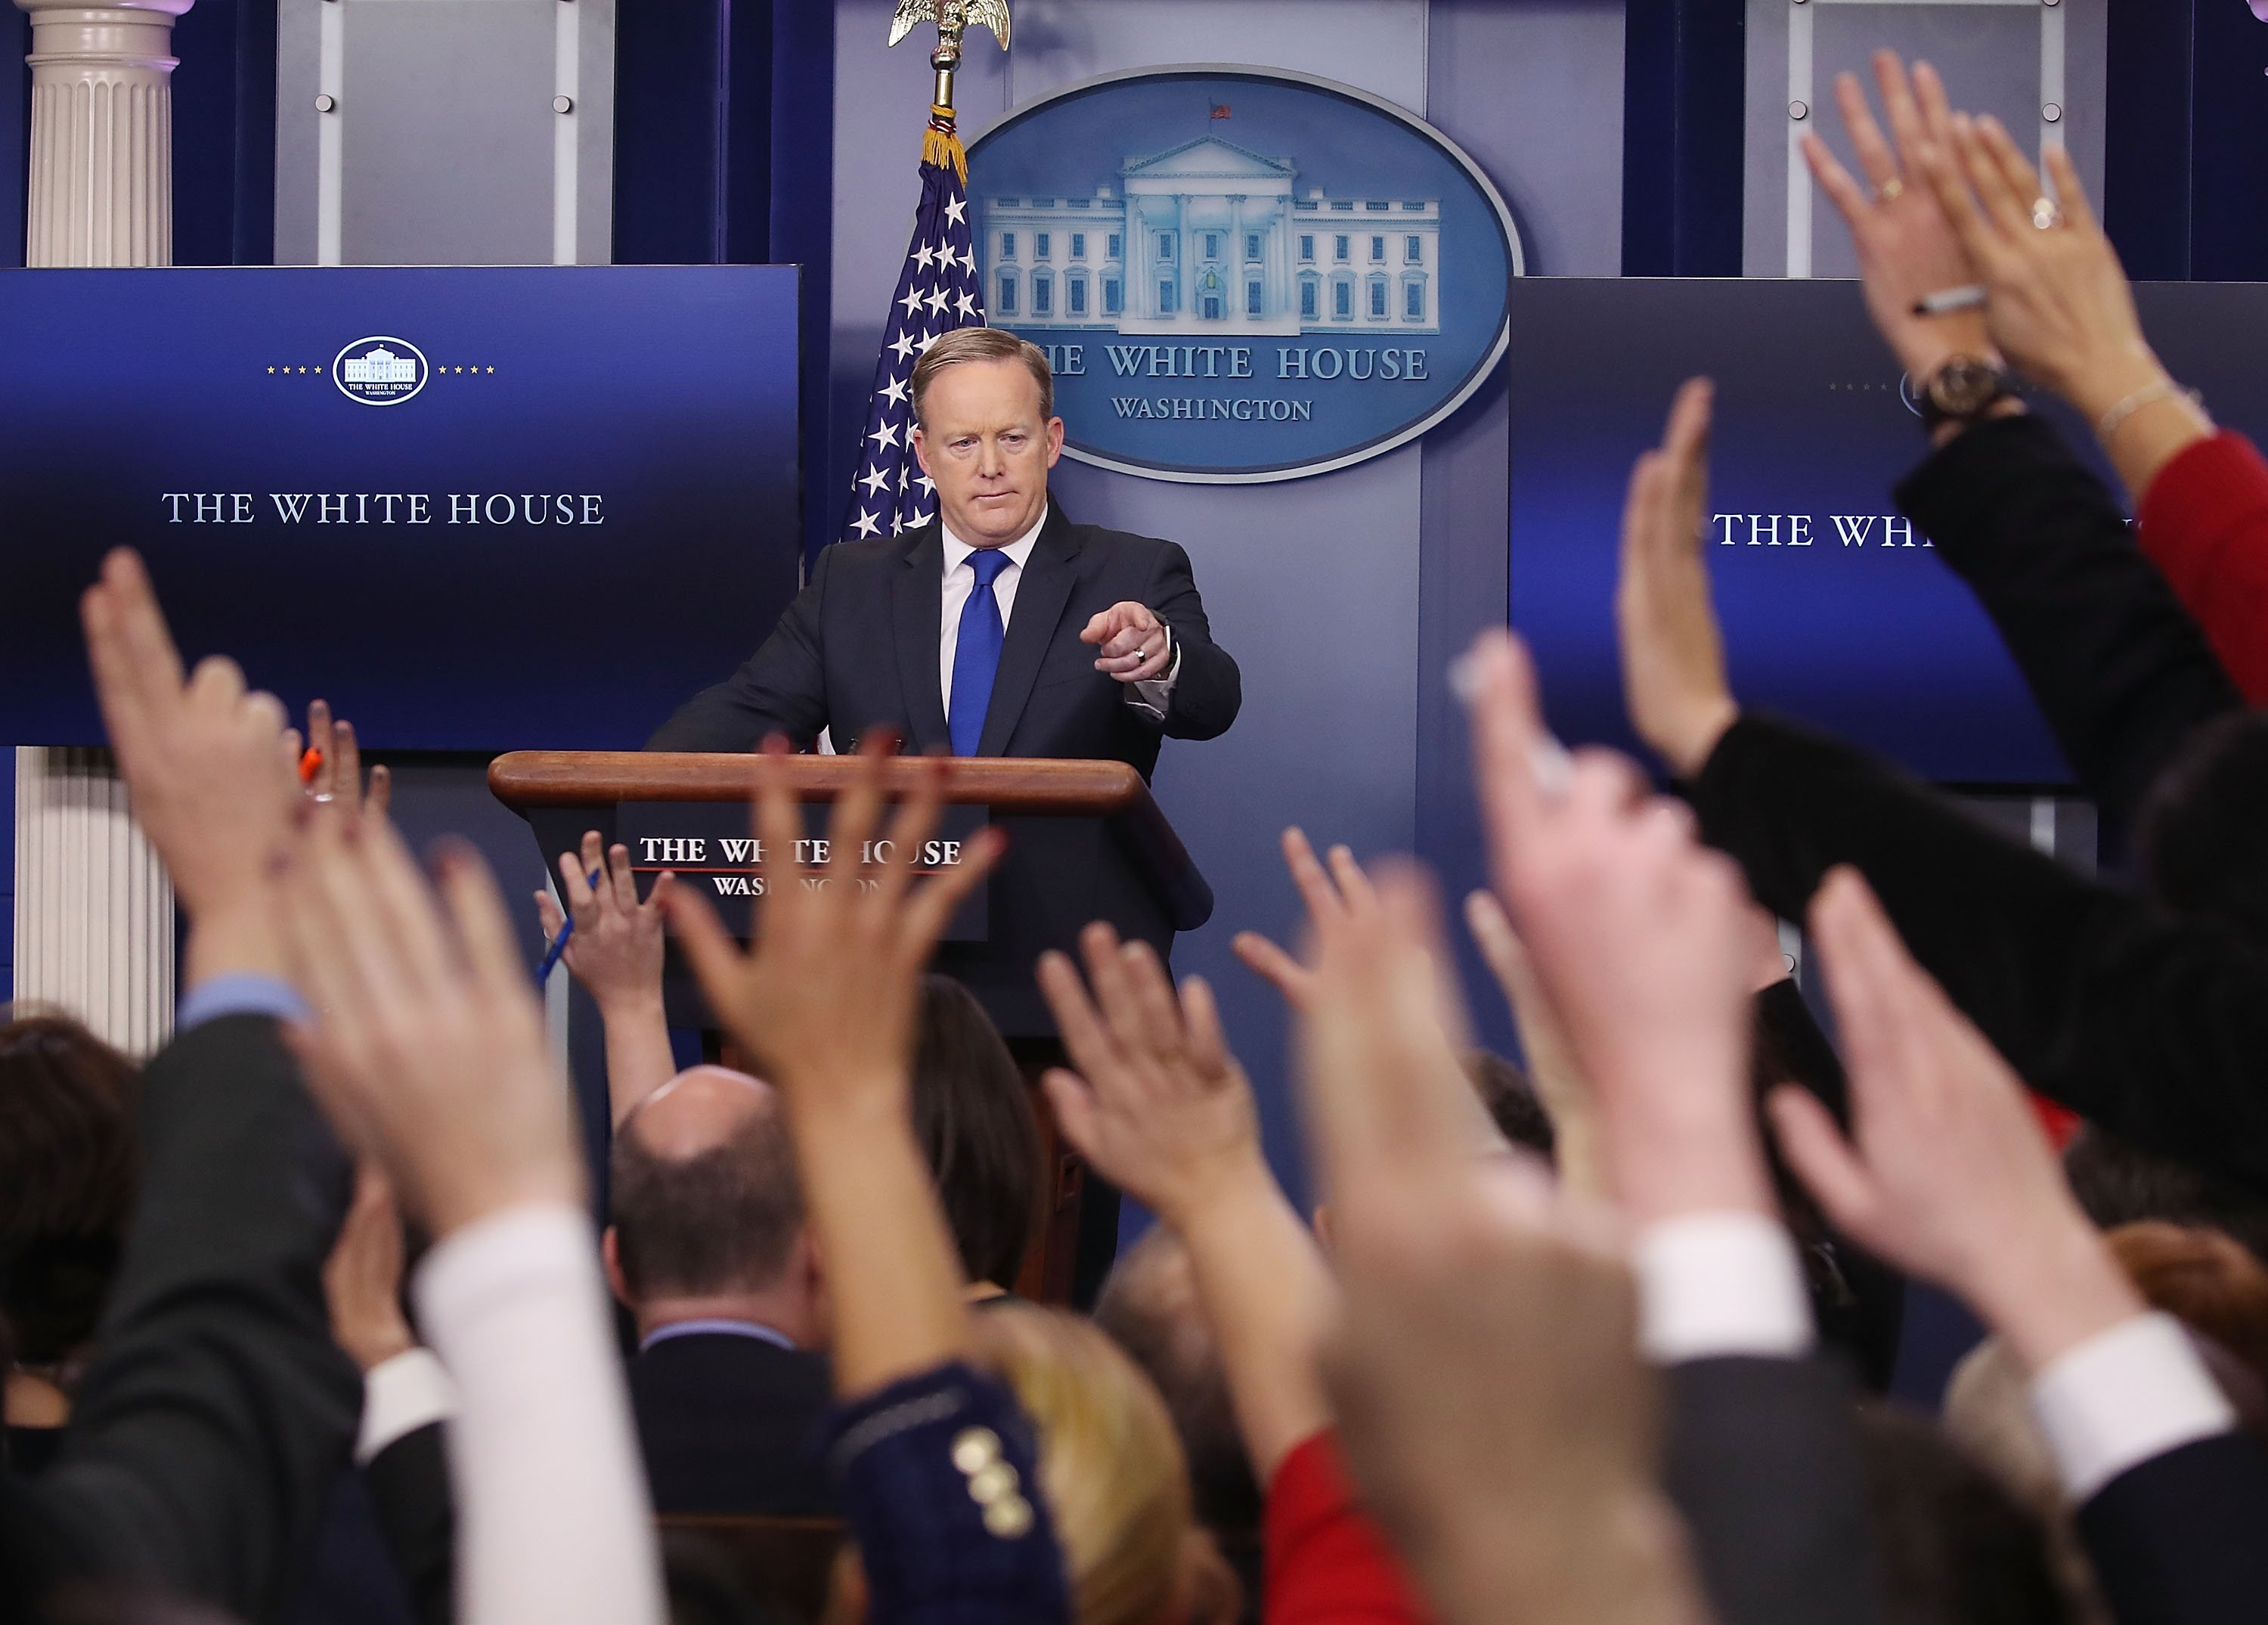 WASHINGTON, DC - FEBRUARY 01:  White House Press Secretary Sean Spicer takes questions from reporters in the Brady Press Briefing Room at the White House February 1, 2017 in Washington, DC.  (Photo by Mark Wilson/Getty Images)